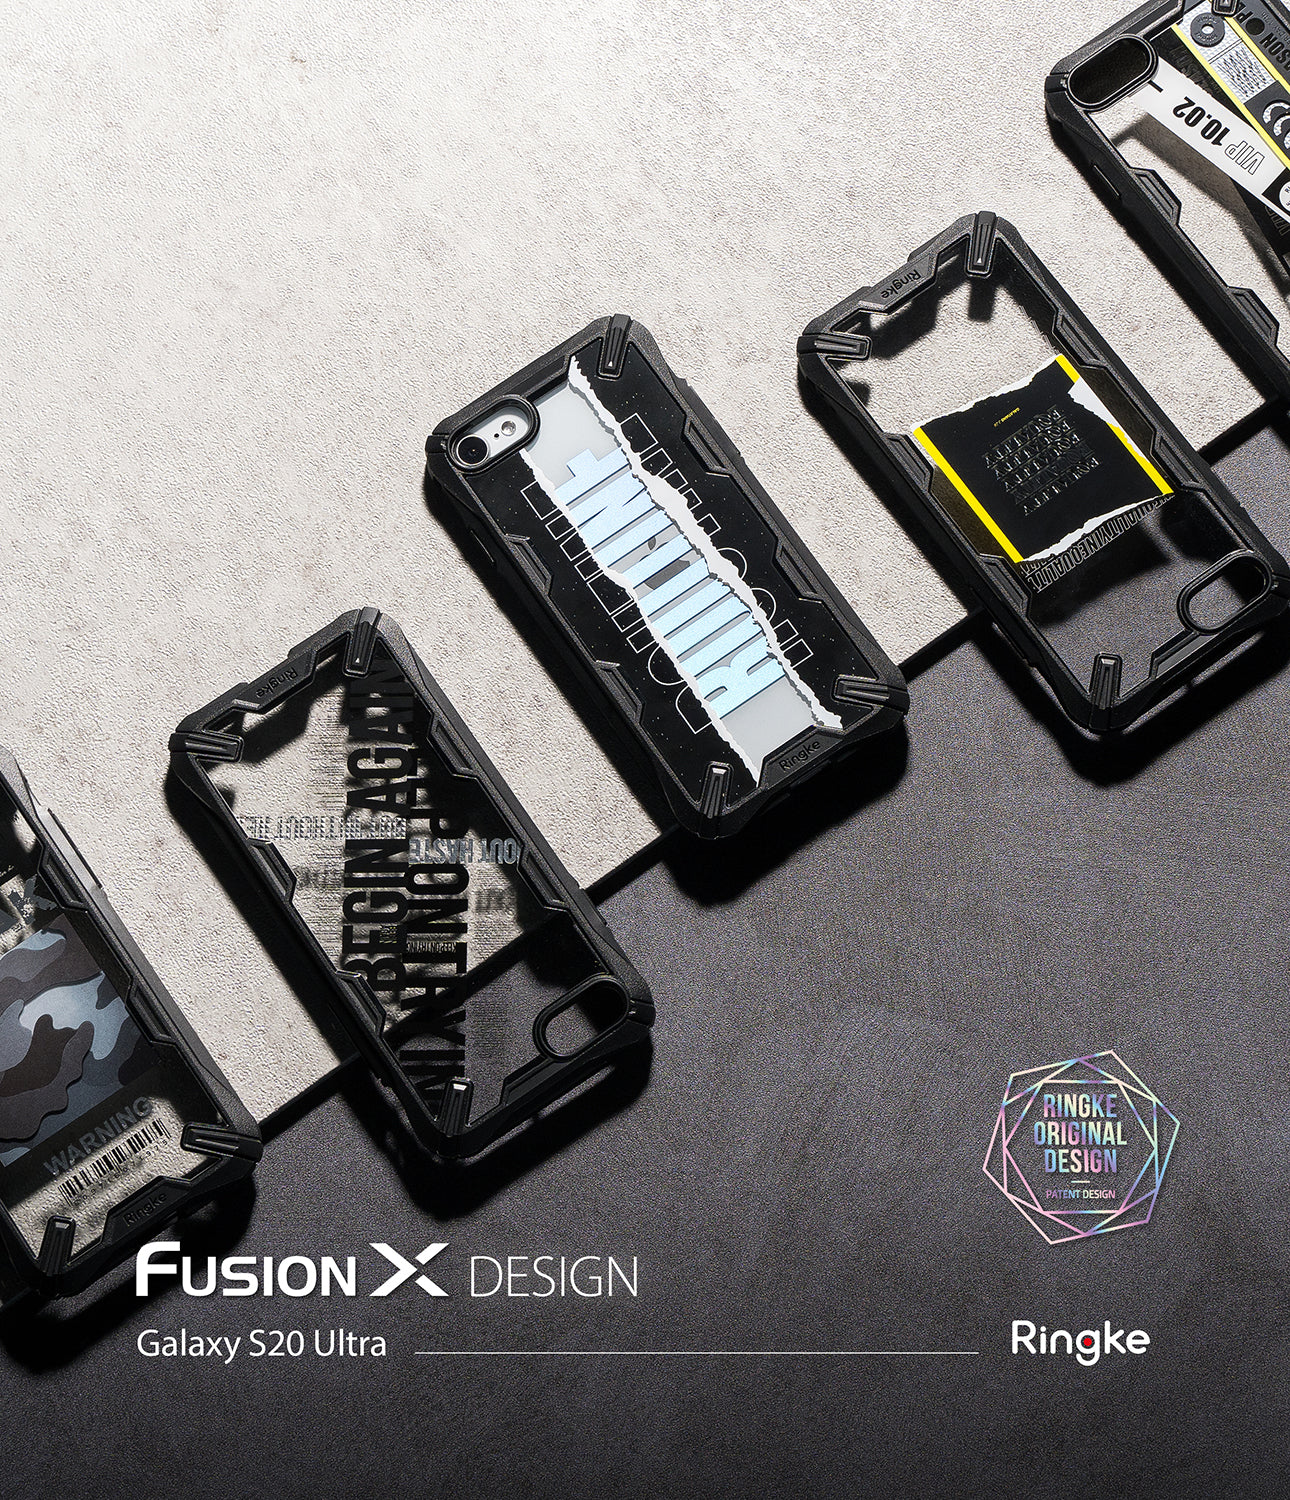 samsung galaxy s20 ultra case - ringke fusion x design 01 ticket band black